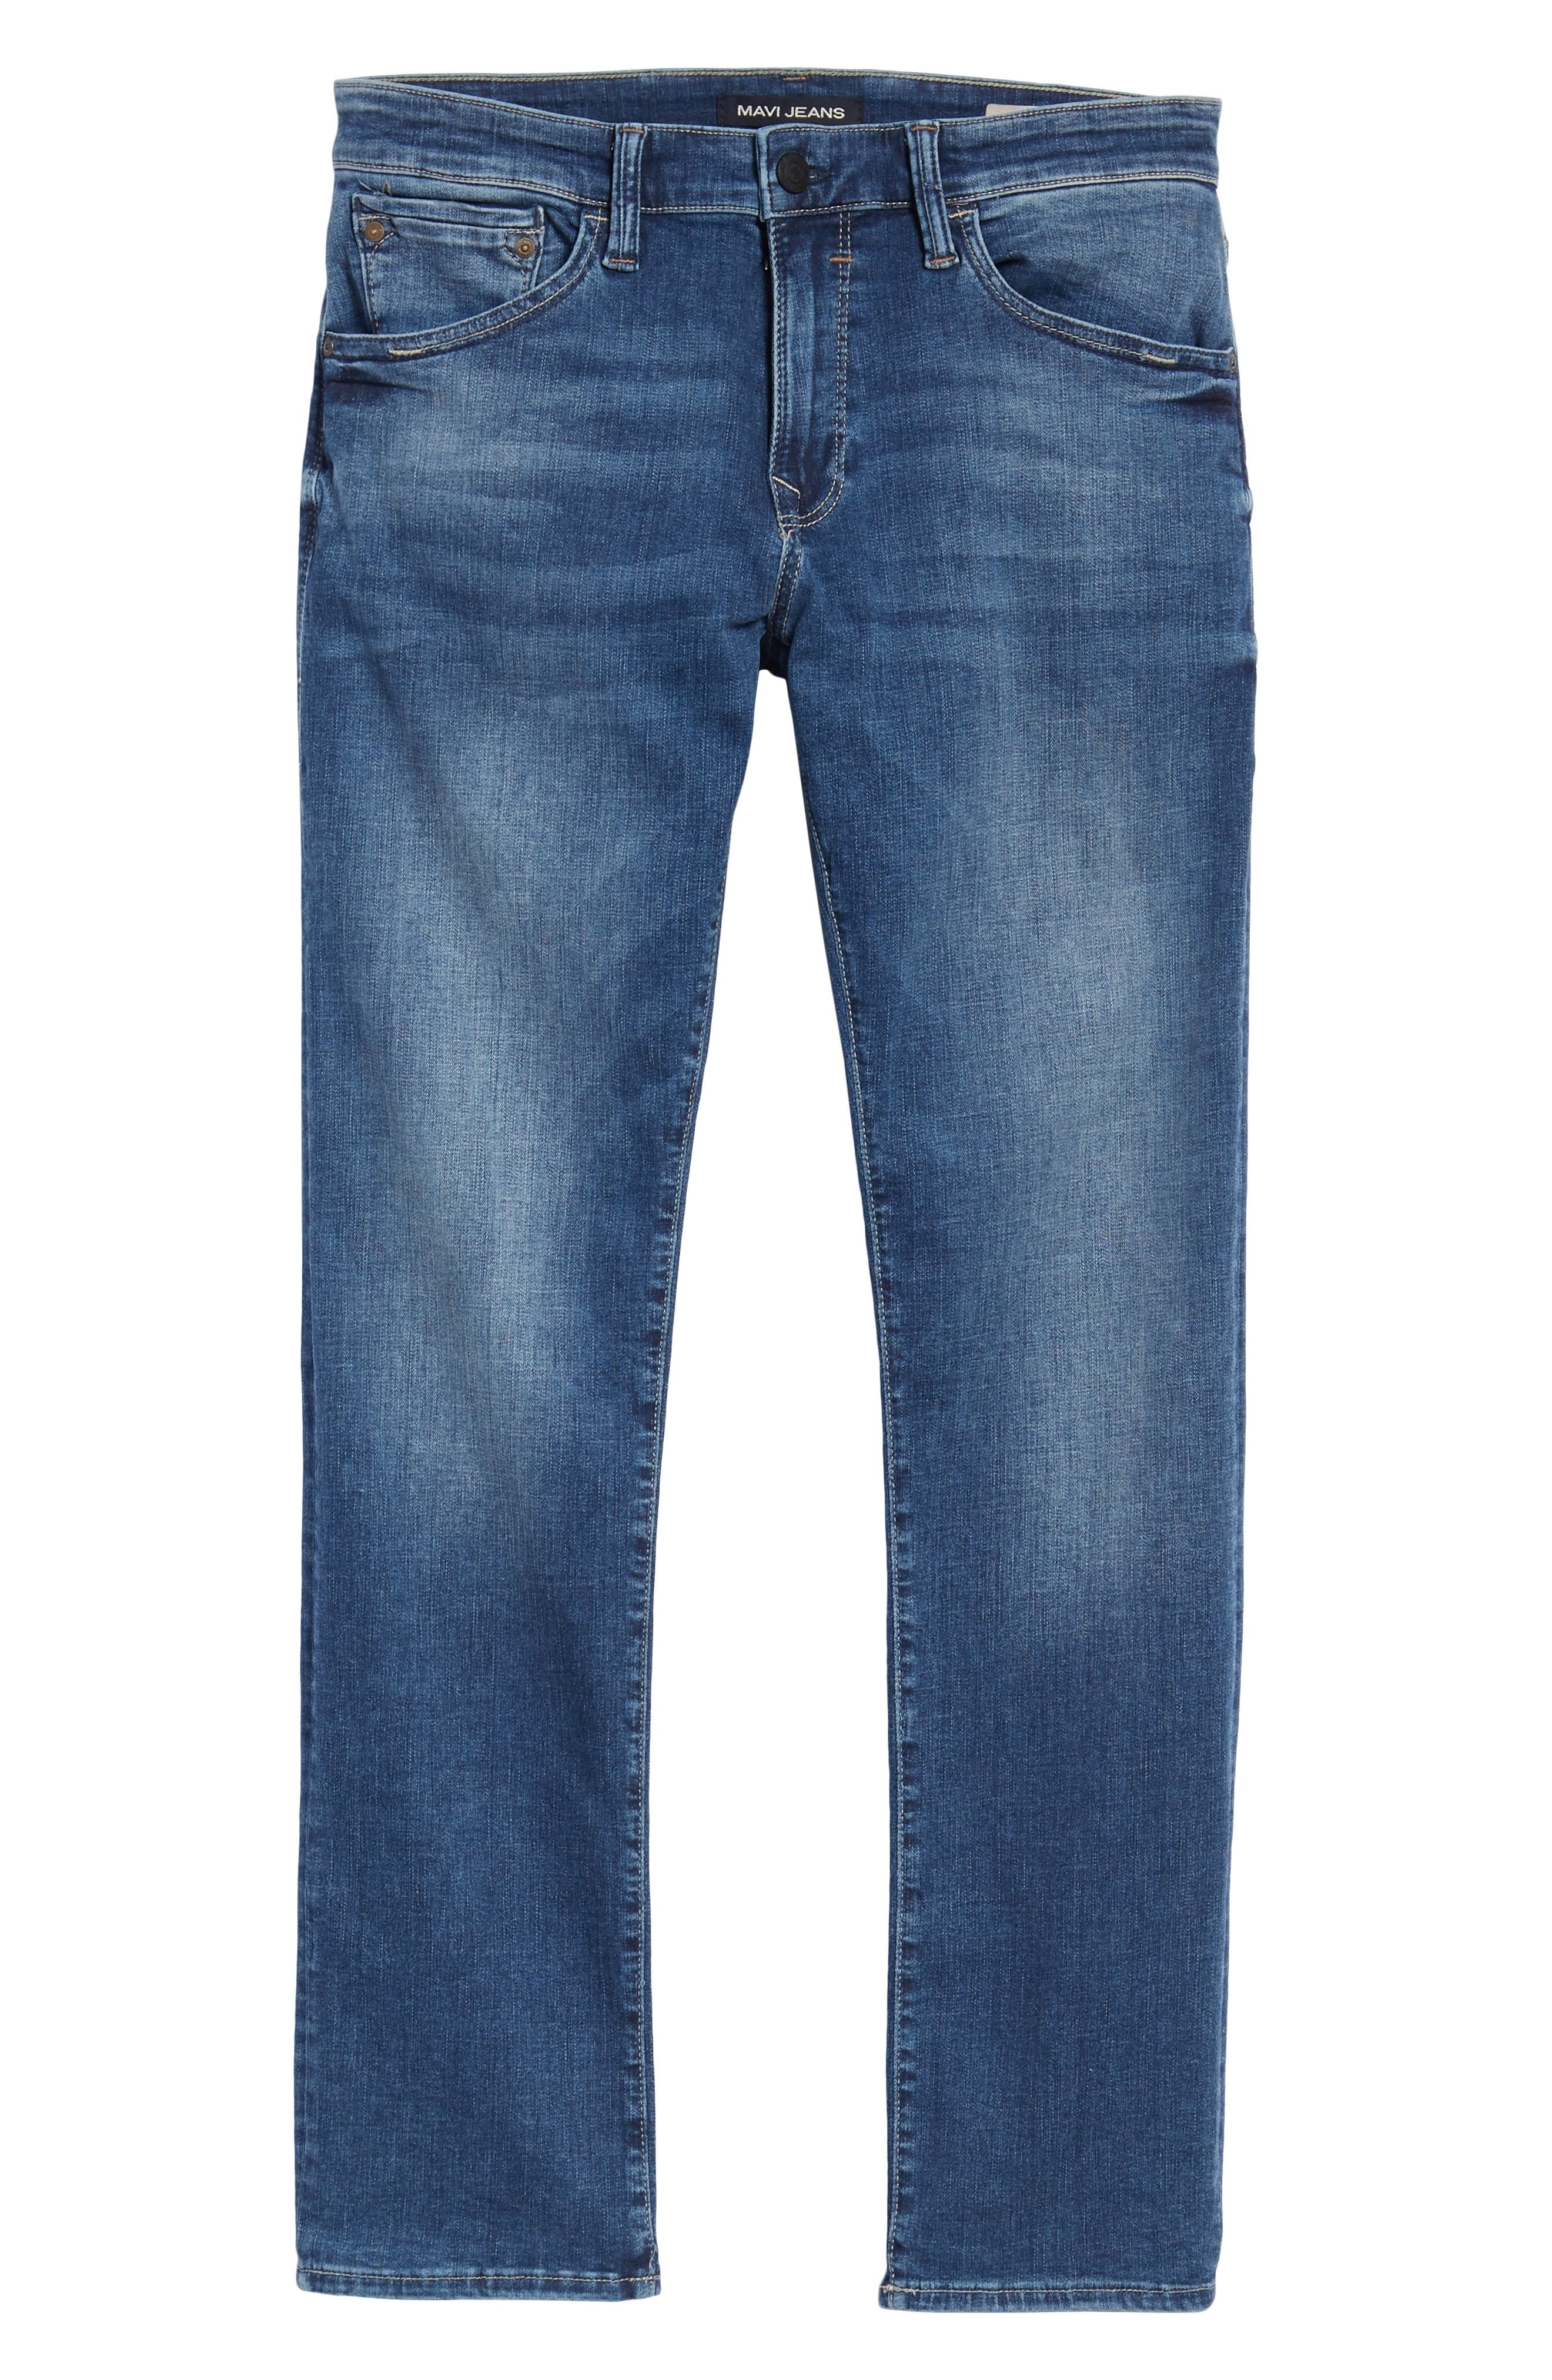 Zach Straight Leg Jeans,                             Alternate thumbnail 6, color,                             400